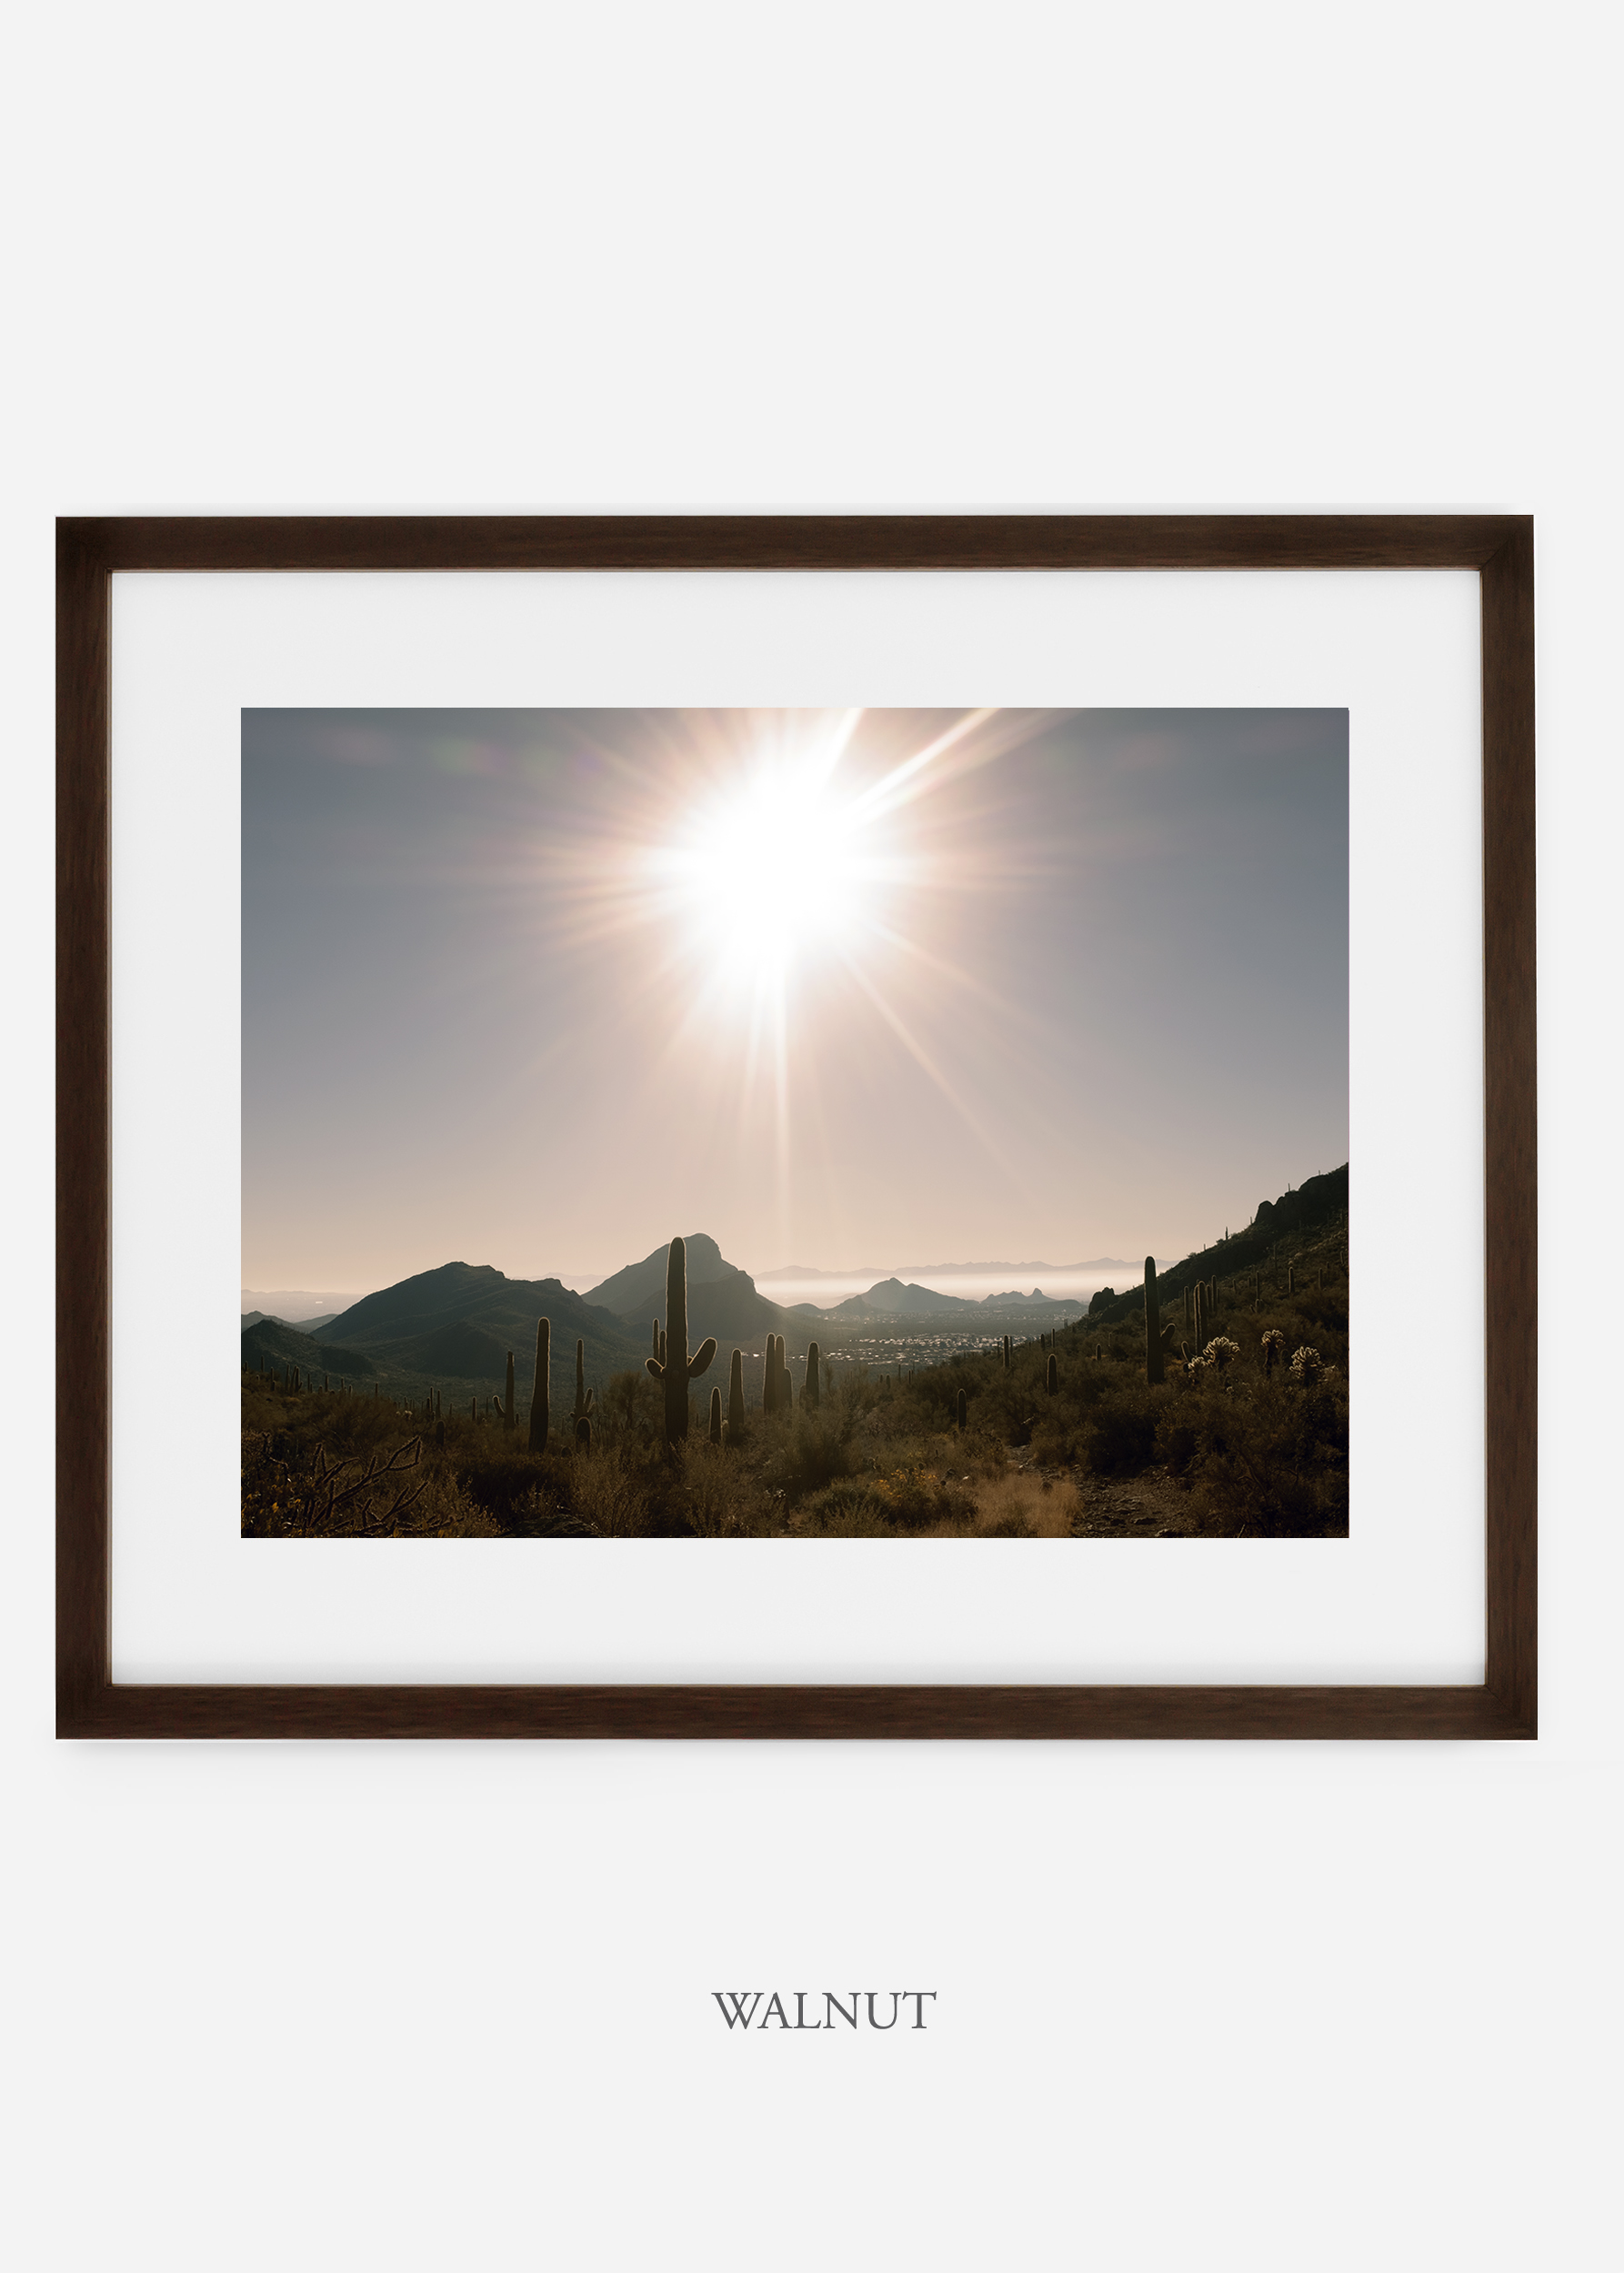 walnutframe-saguaroNo.15-wildercalifornia-art-wallart-cactusprint-homedecor-prints-arizona-botanical-artwork-interiordesign.jpg